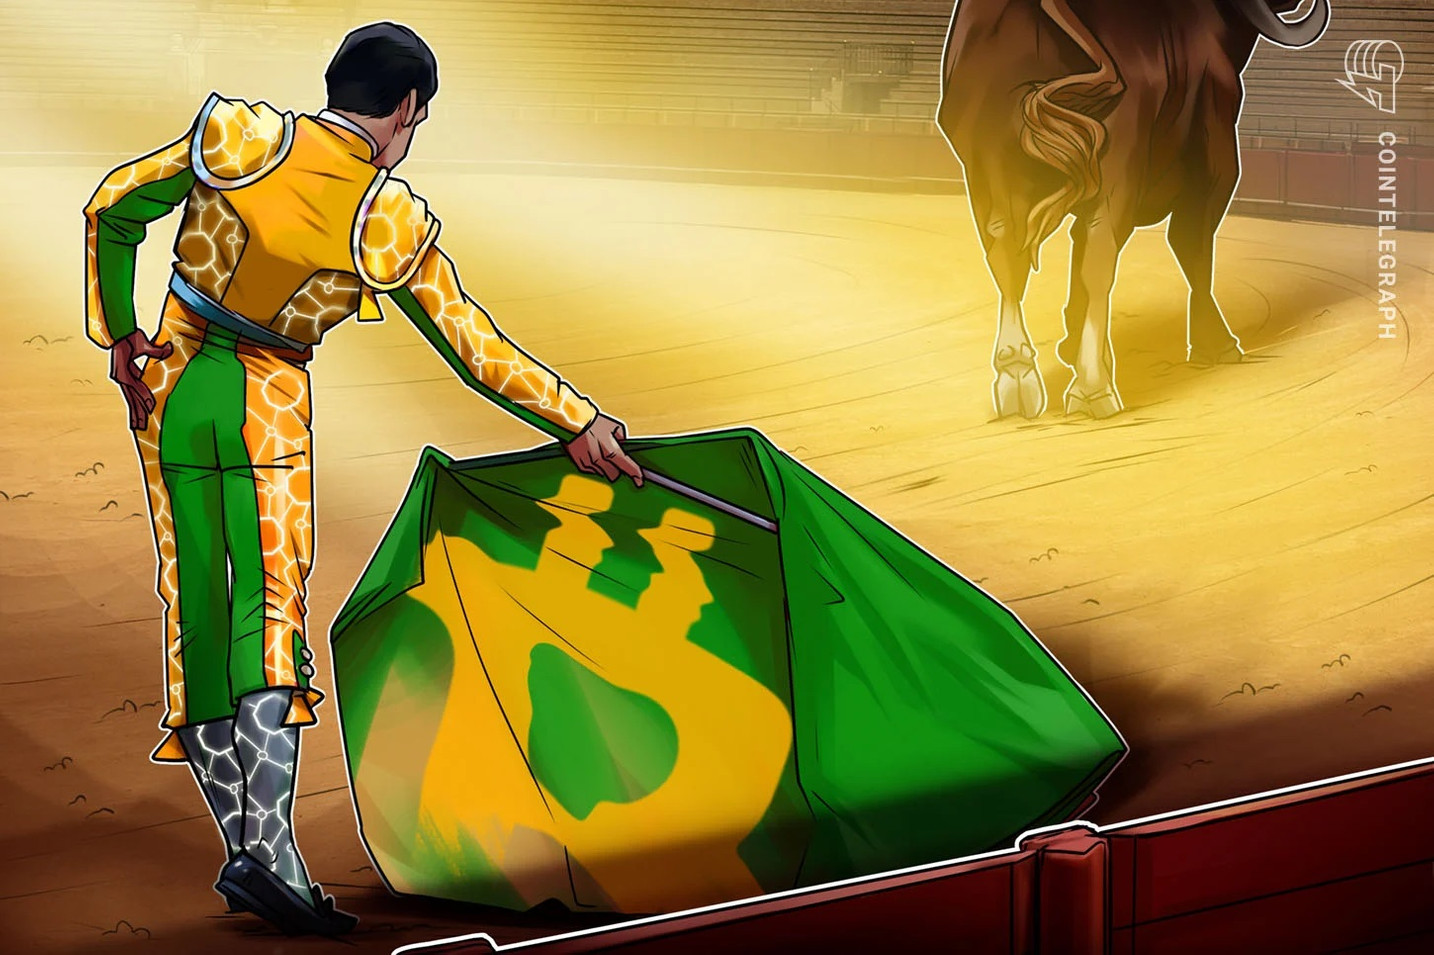 Bitcoin 'golden cross' due in days as bears draw a line at $47K BTC price